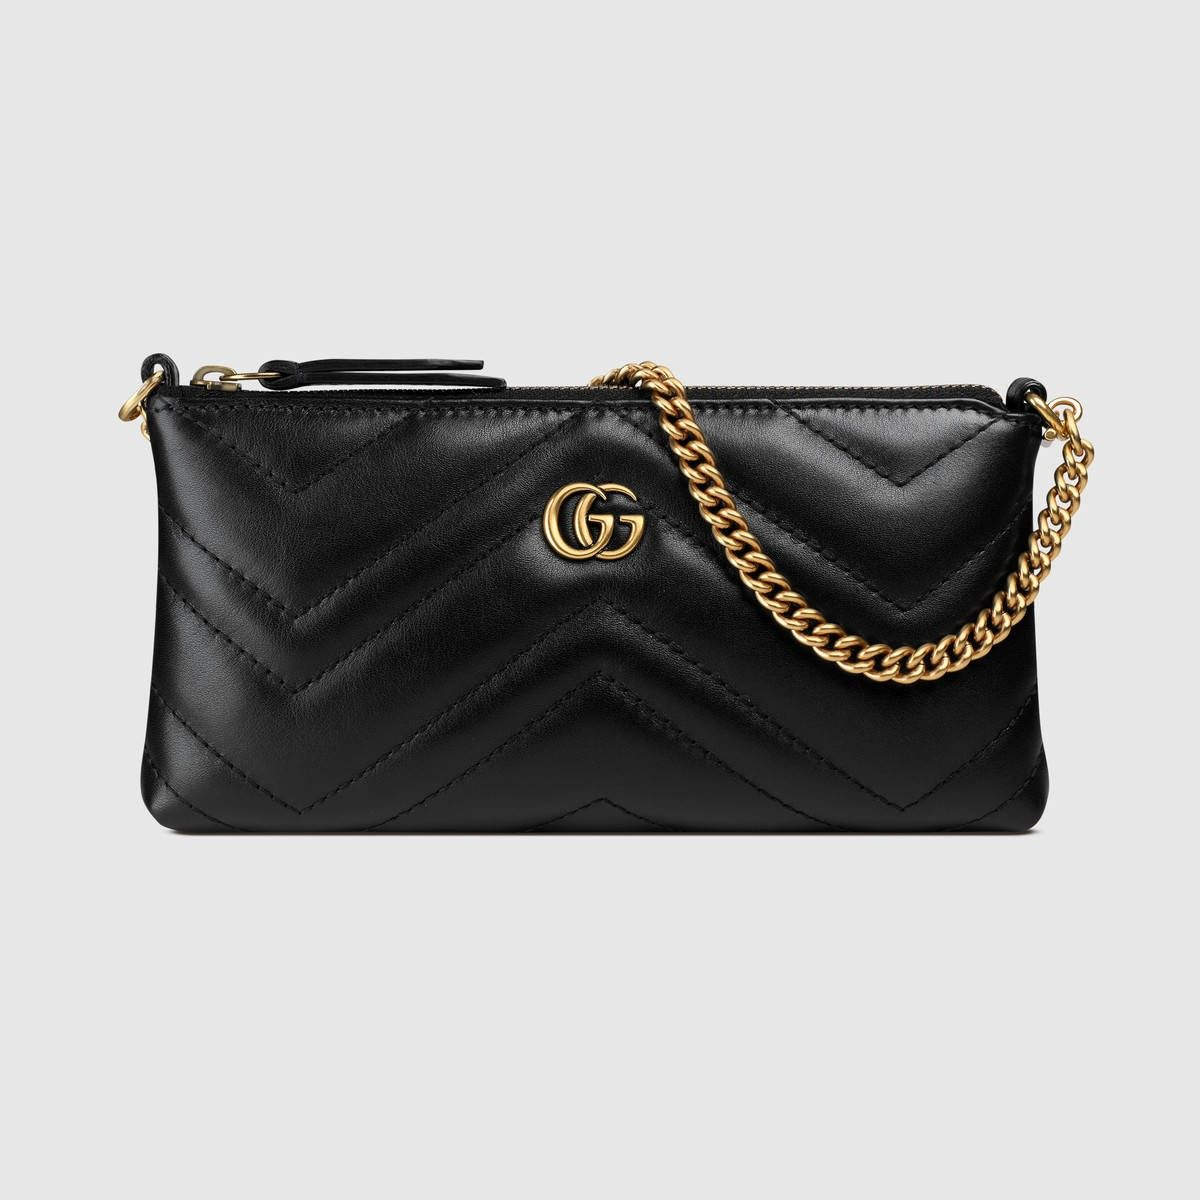 977f56152947 GUCCI Gg Marmont Chain Mini Bag - Black Leather. #gucci #bags #shoulder bags  #leather #pouch #accessories #